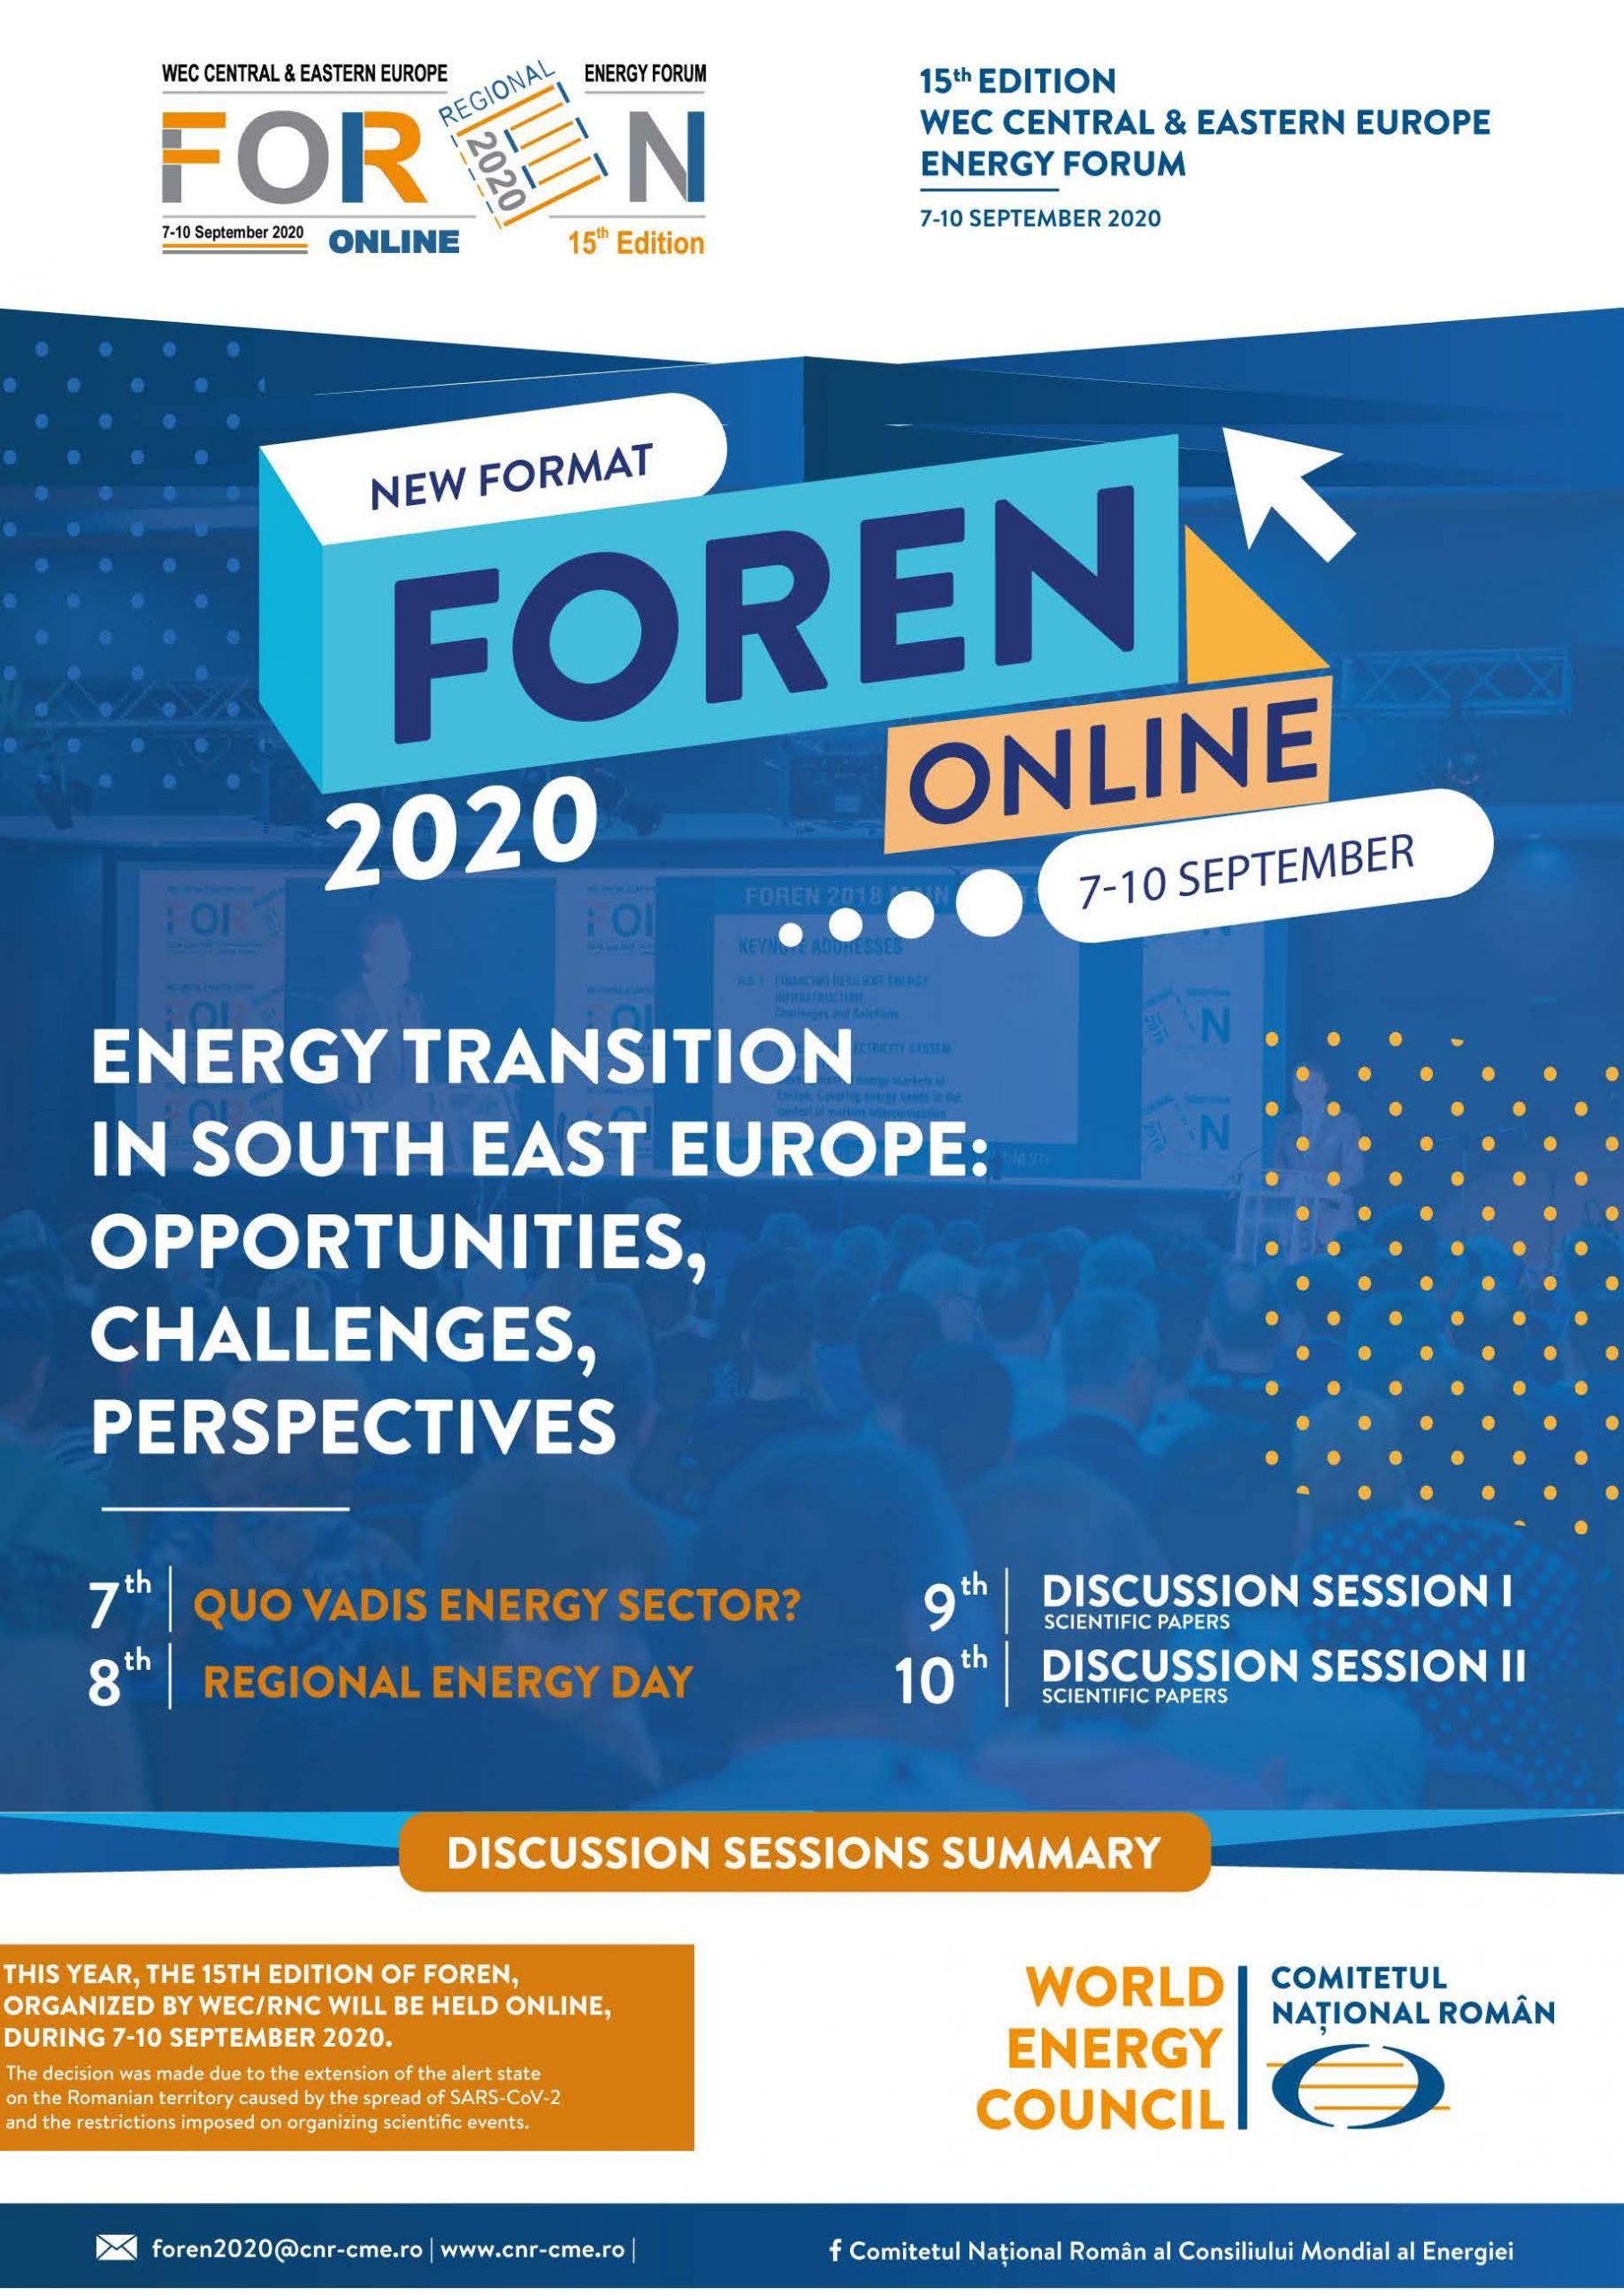 FOREN 2020 – Discussion Sessions Summary